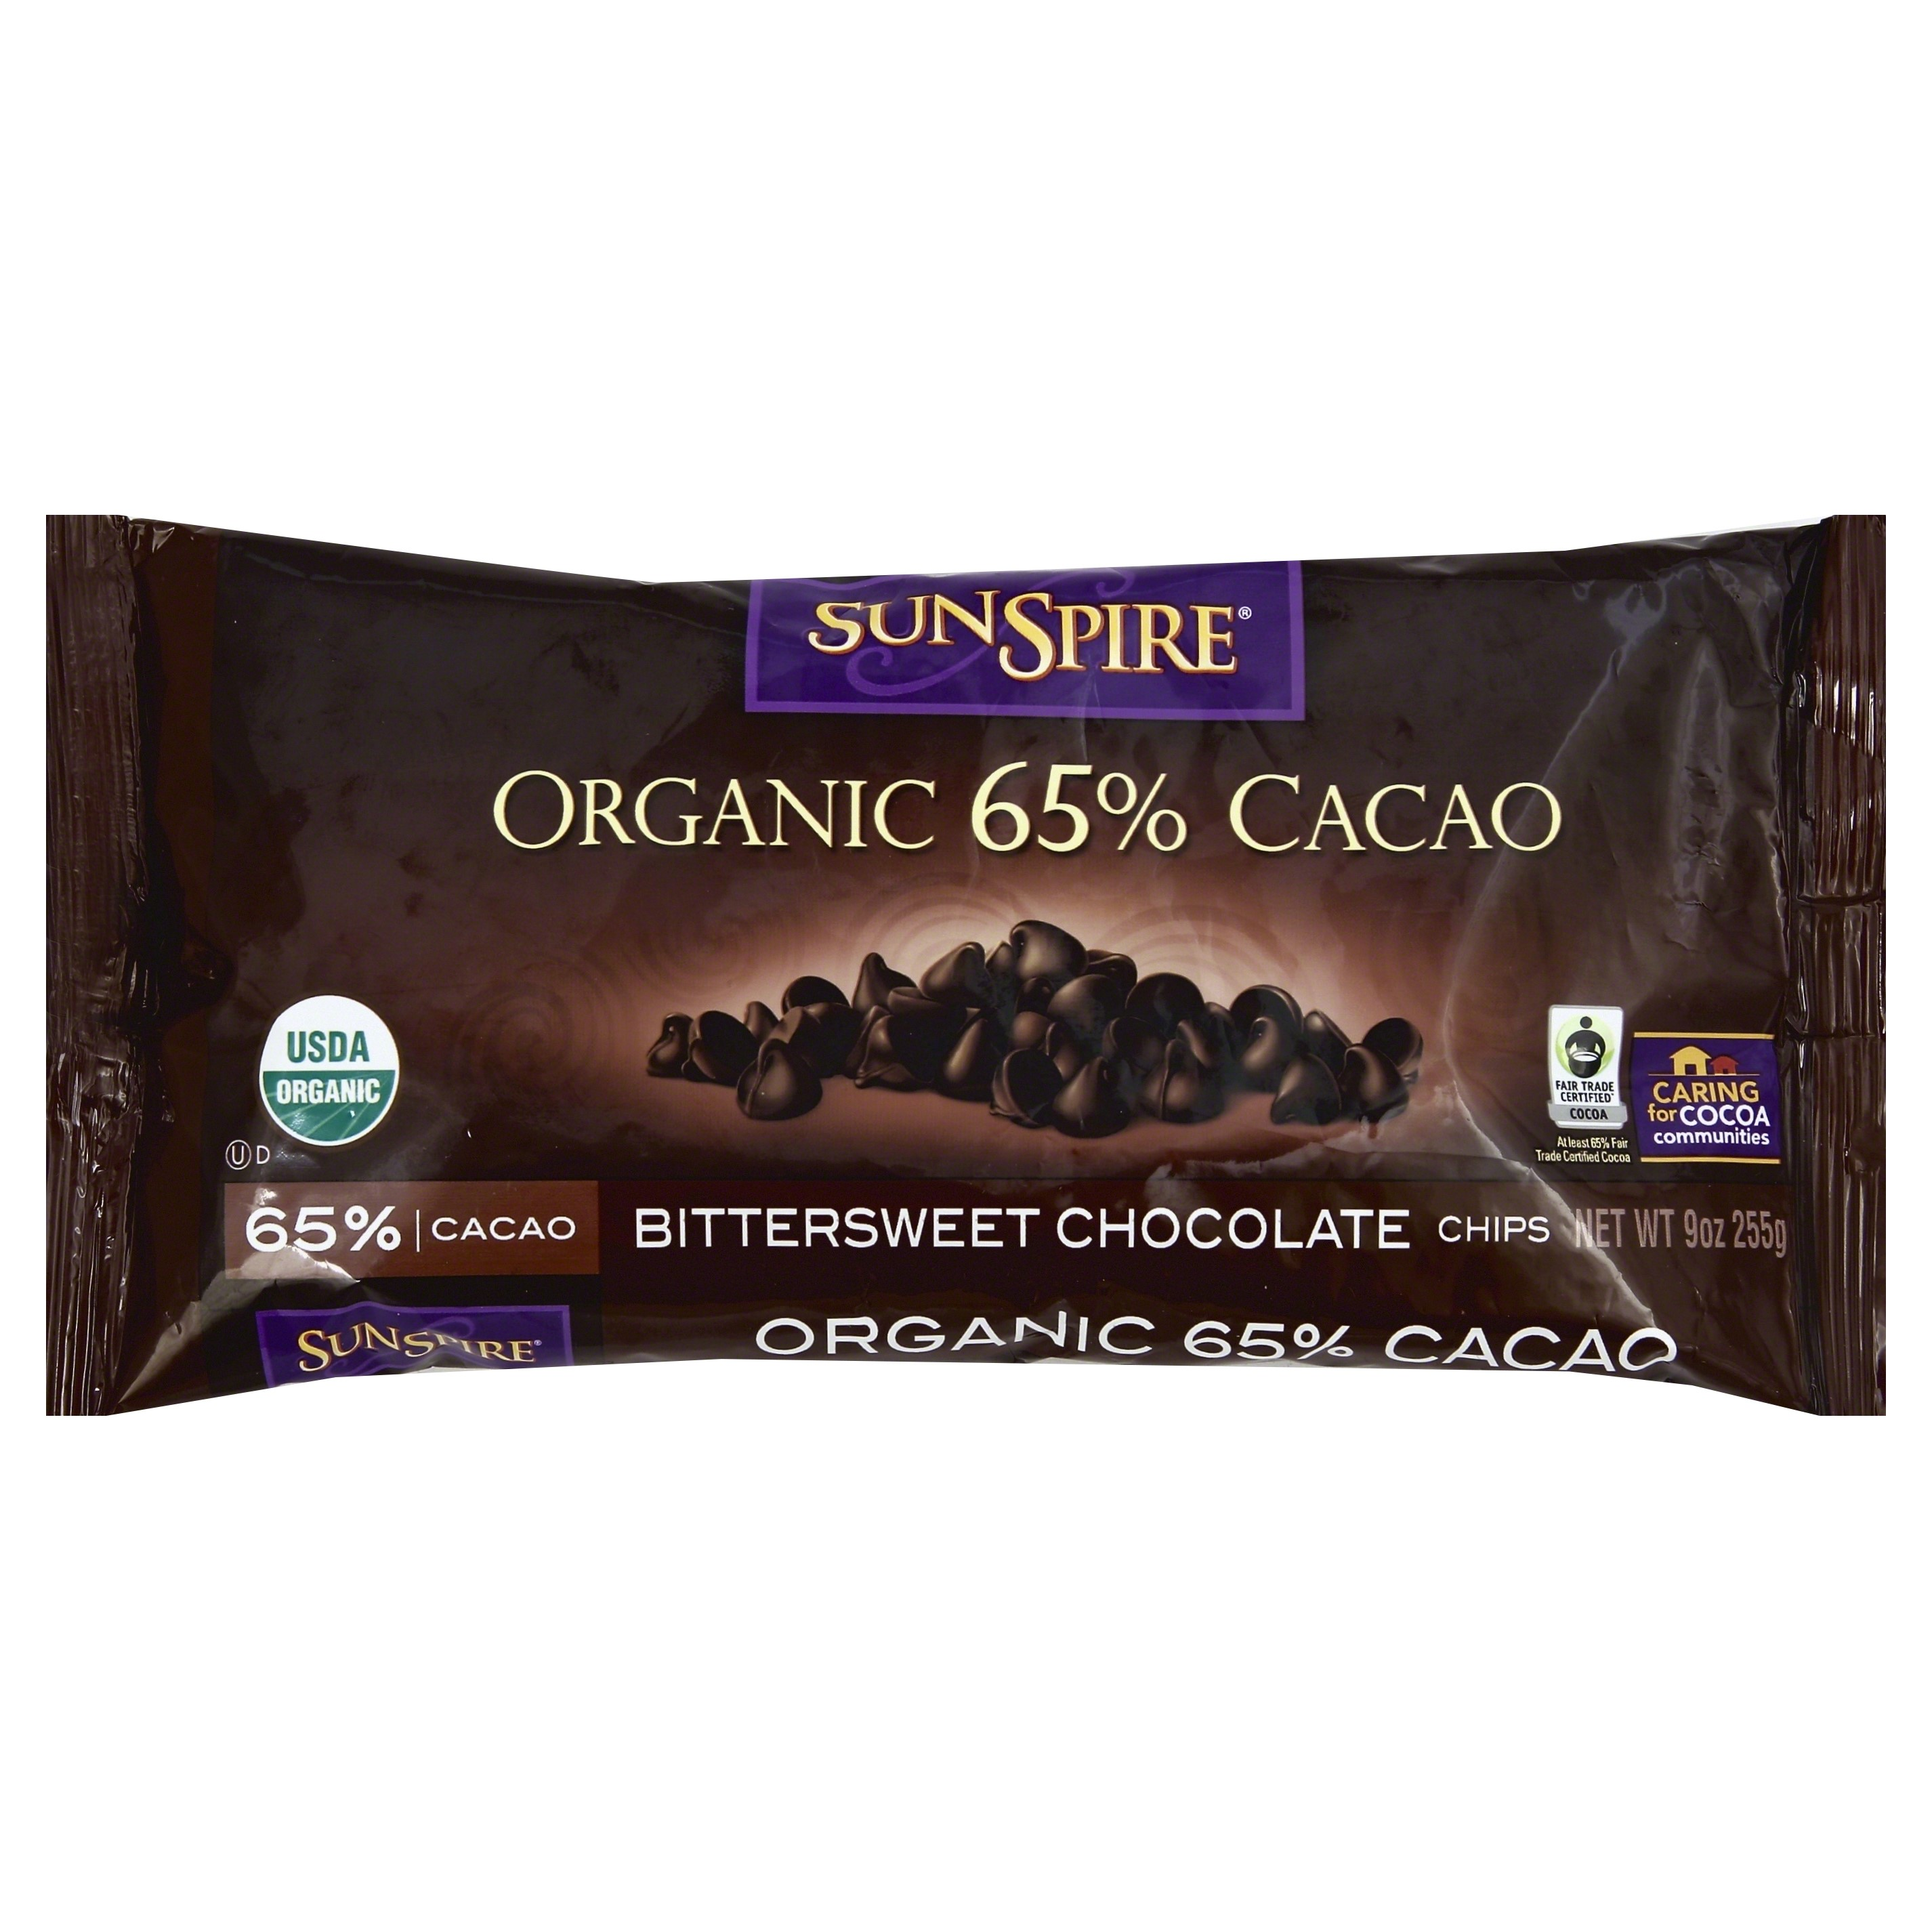 SunSpire Organic Fair Trade 65% Cacao Baking Chips, 9 Oz by Hain Celestial